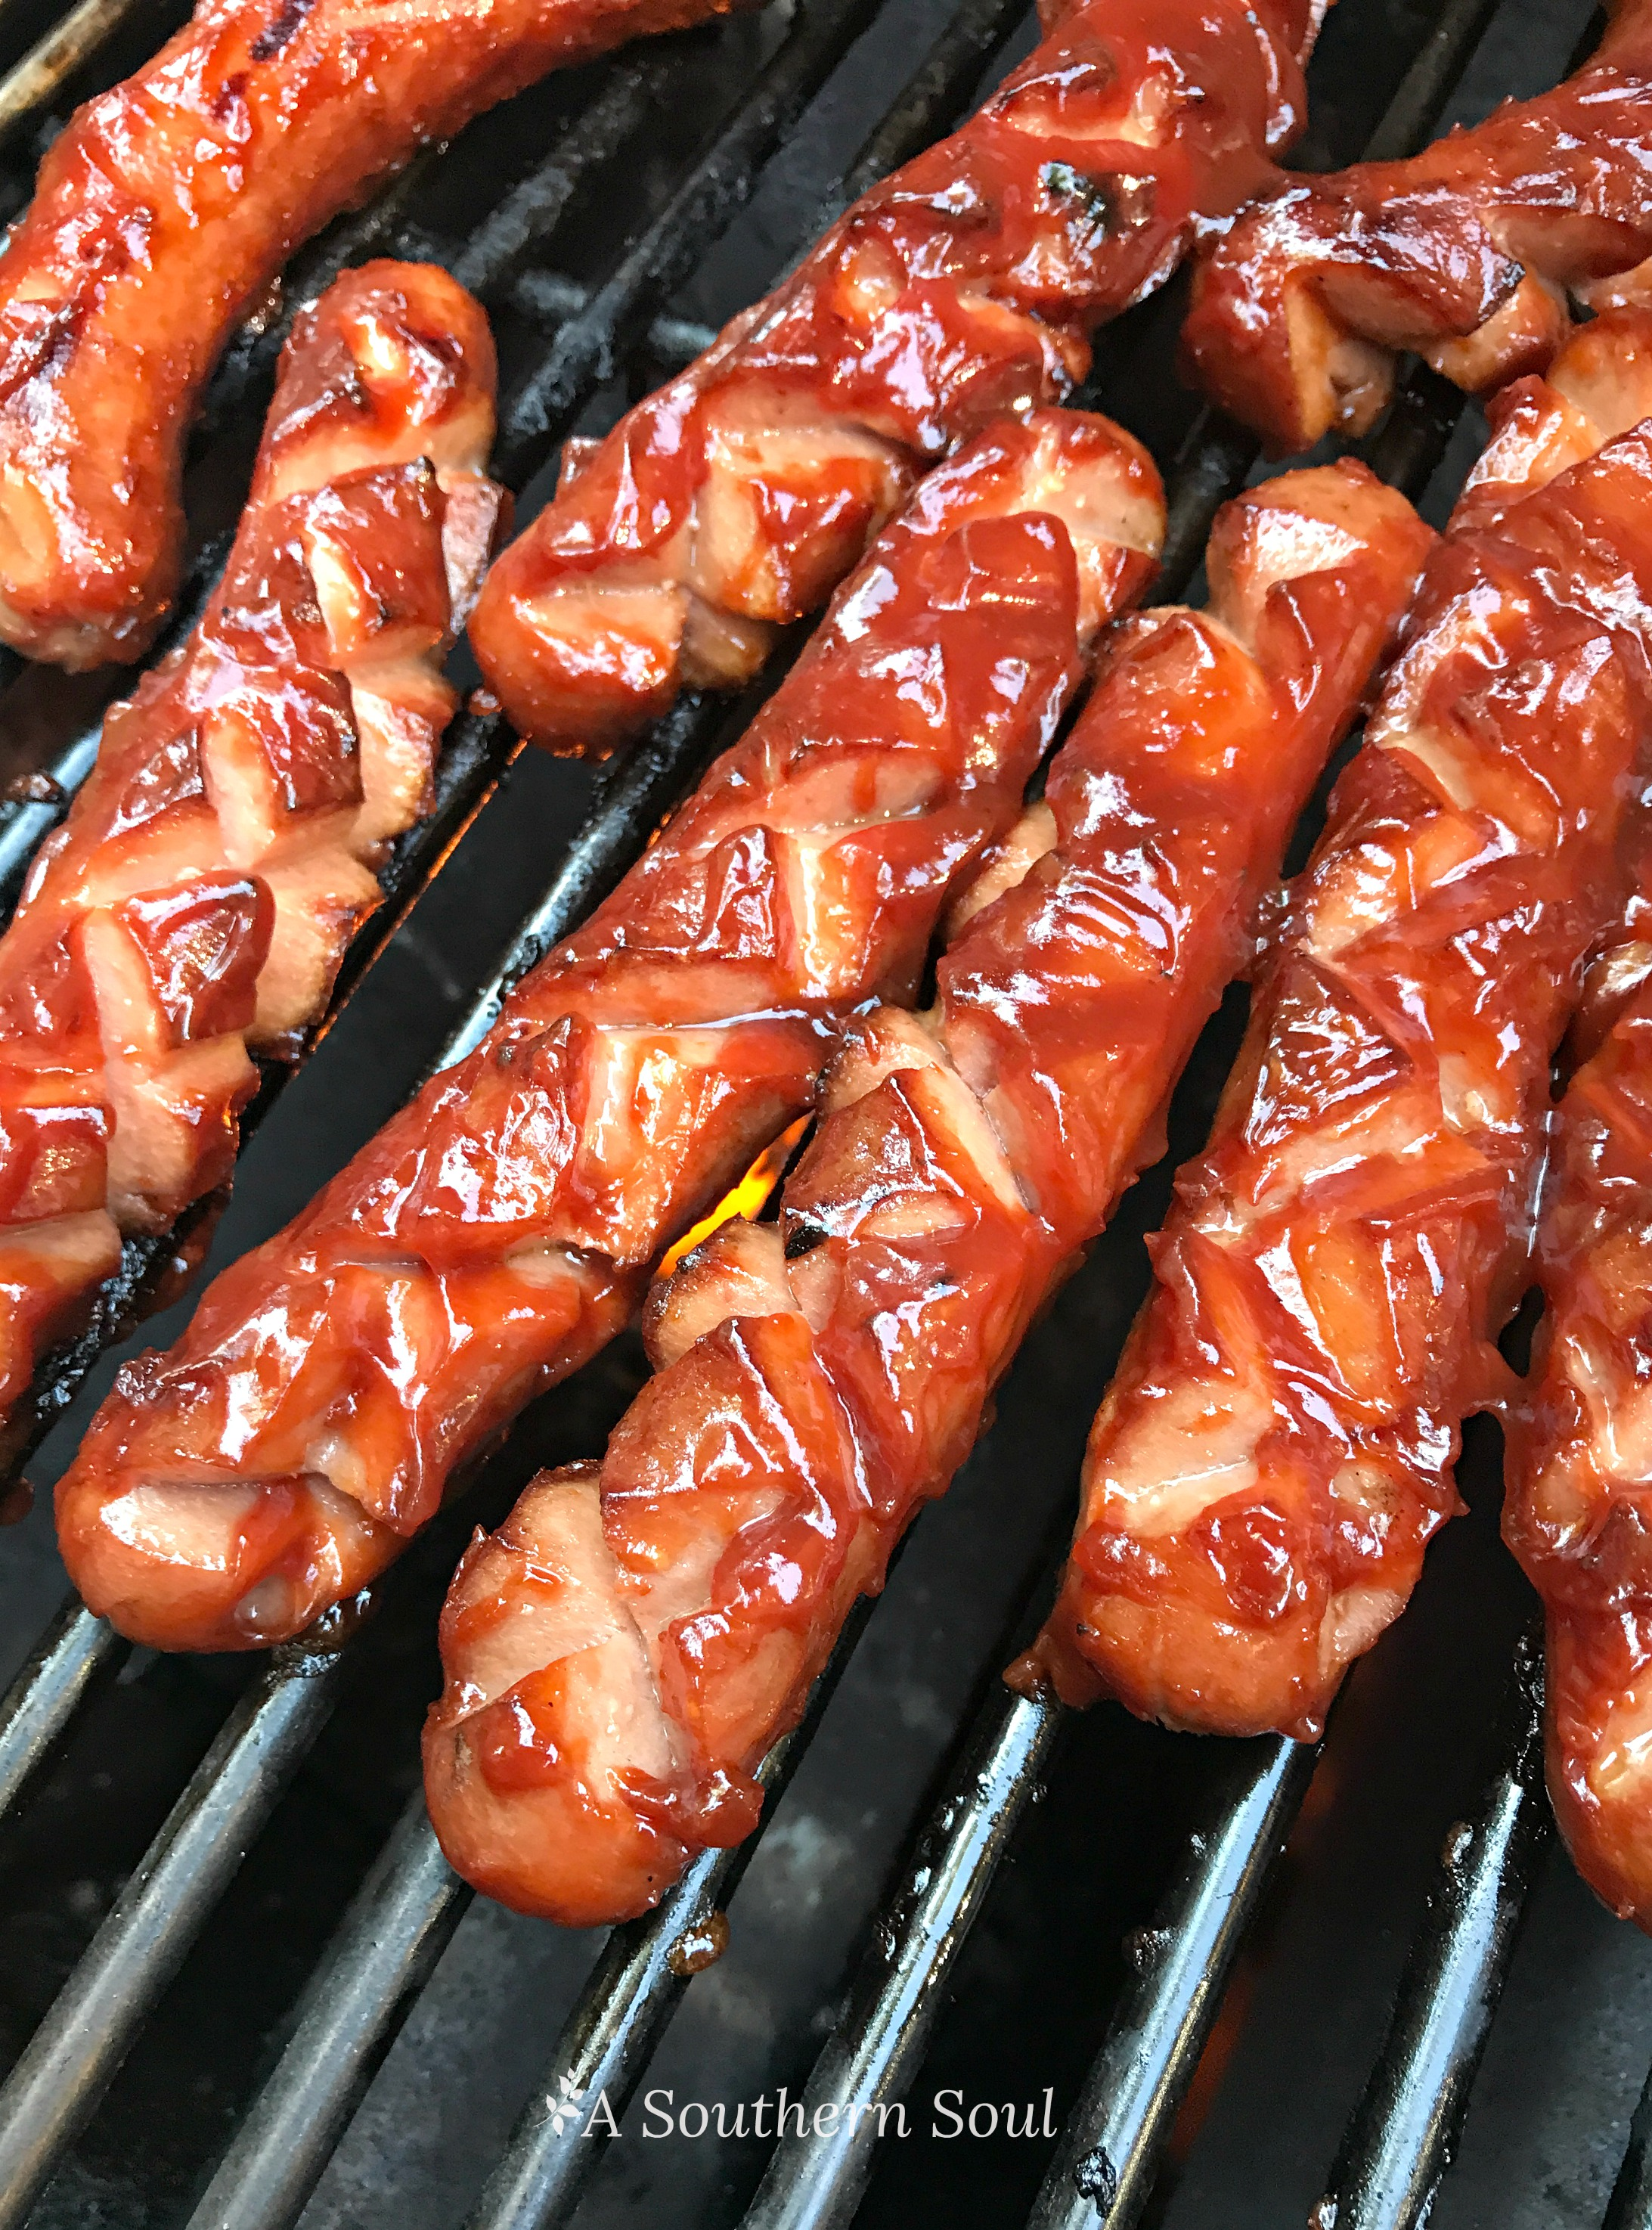 Grilled barbecued hot dogs with homemade sauce